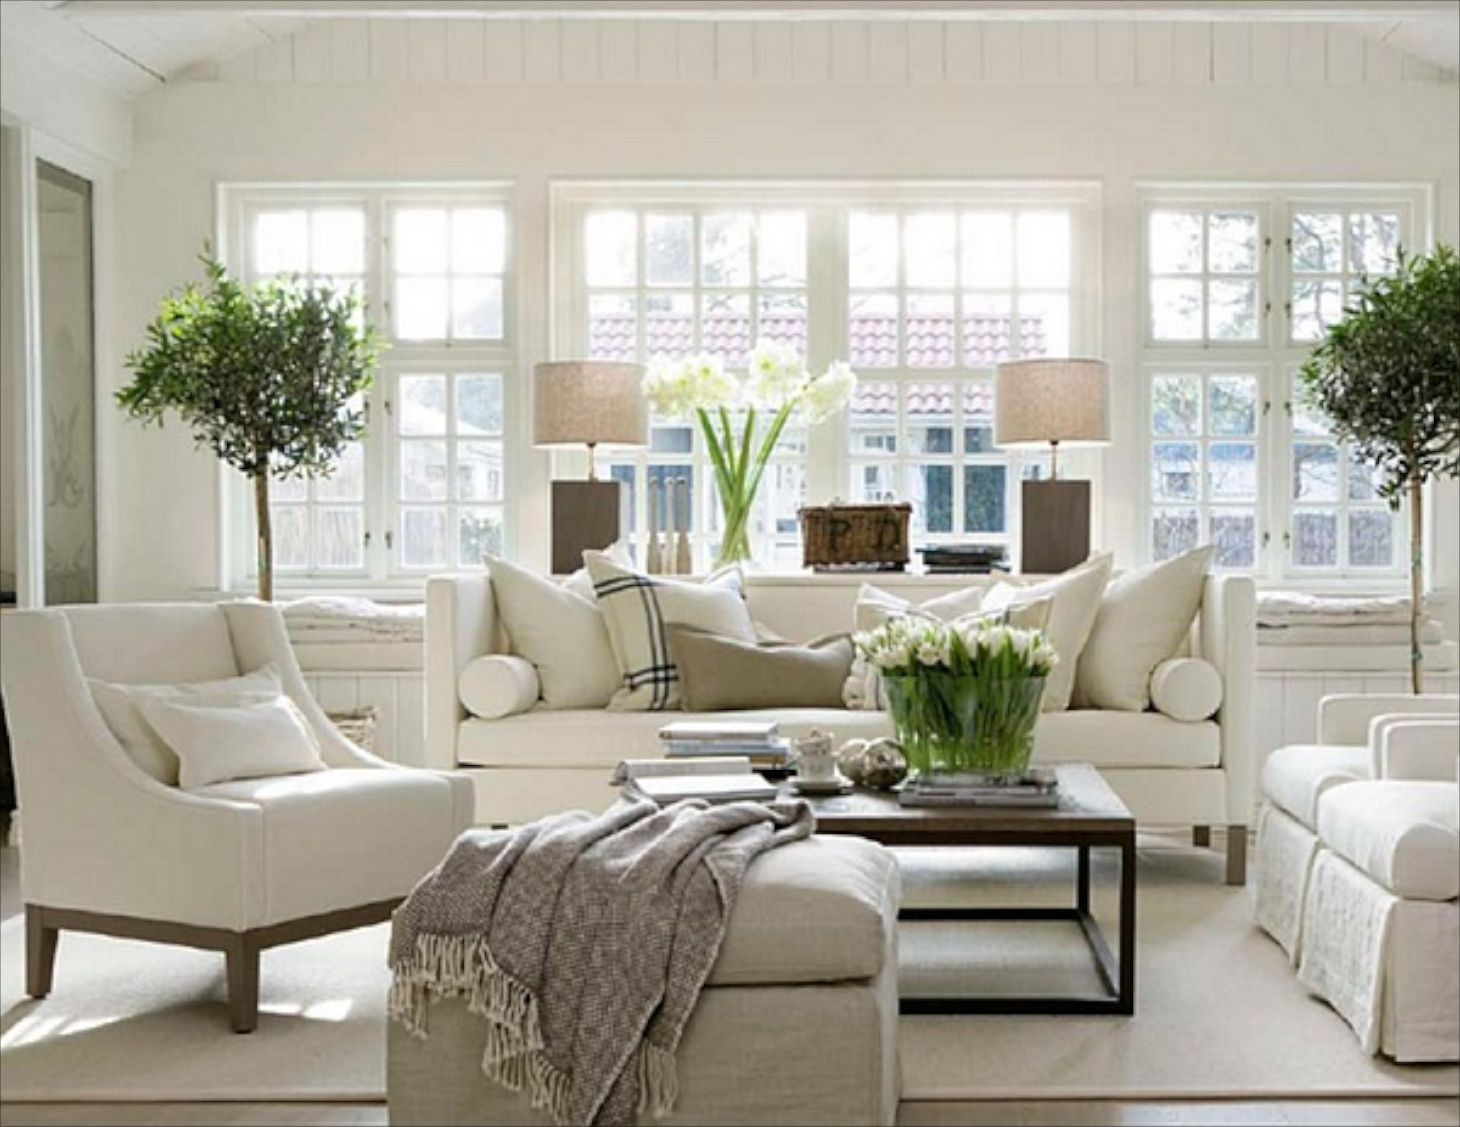 Modern White Living Room Furniture Formal Ideas With Fireplace 22 Cozy Traditional Indoor Plant Decor Whg